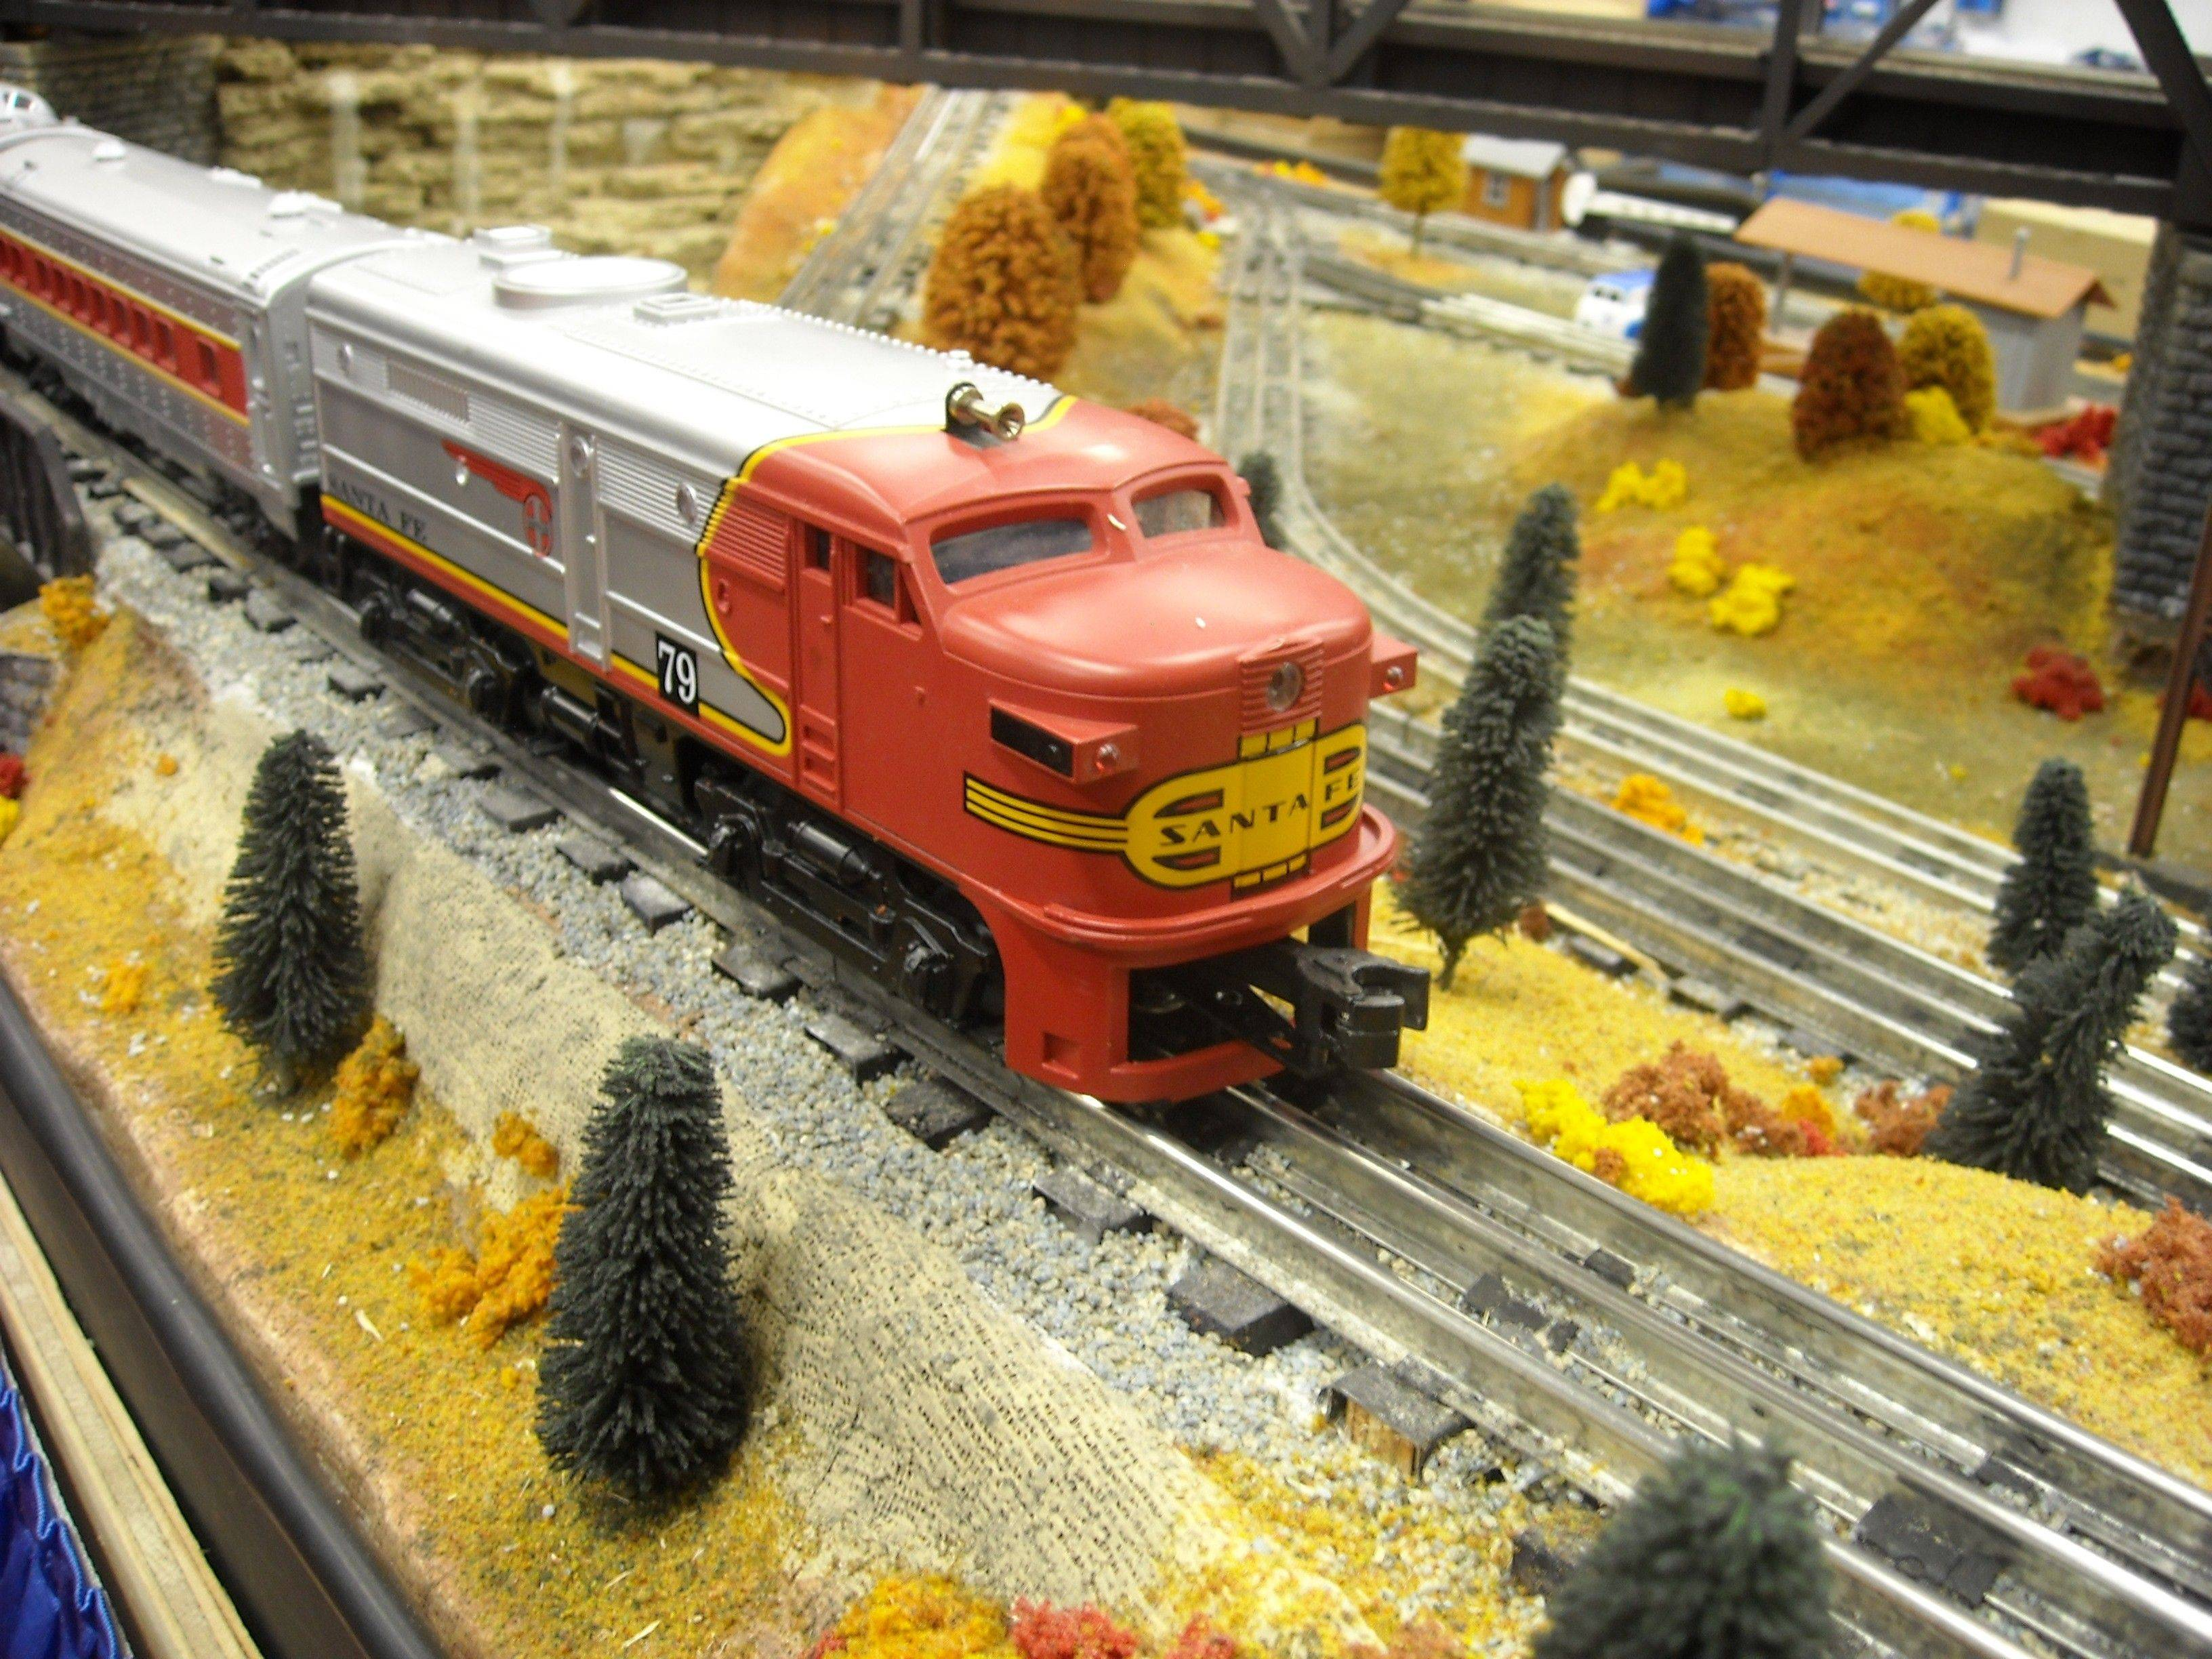 The World's Greatest Hobby on Tour train show pulls into the Renaissance Schaumburg Convention Center on Saturday and Sunday, Jan. 14 and 15.